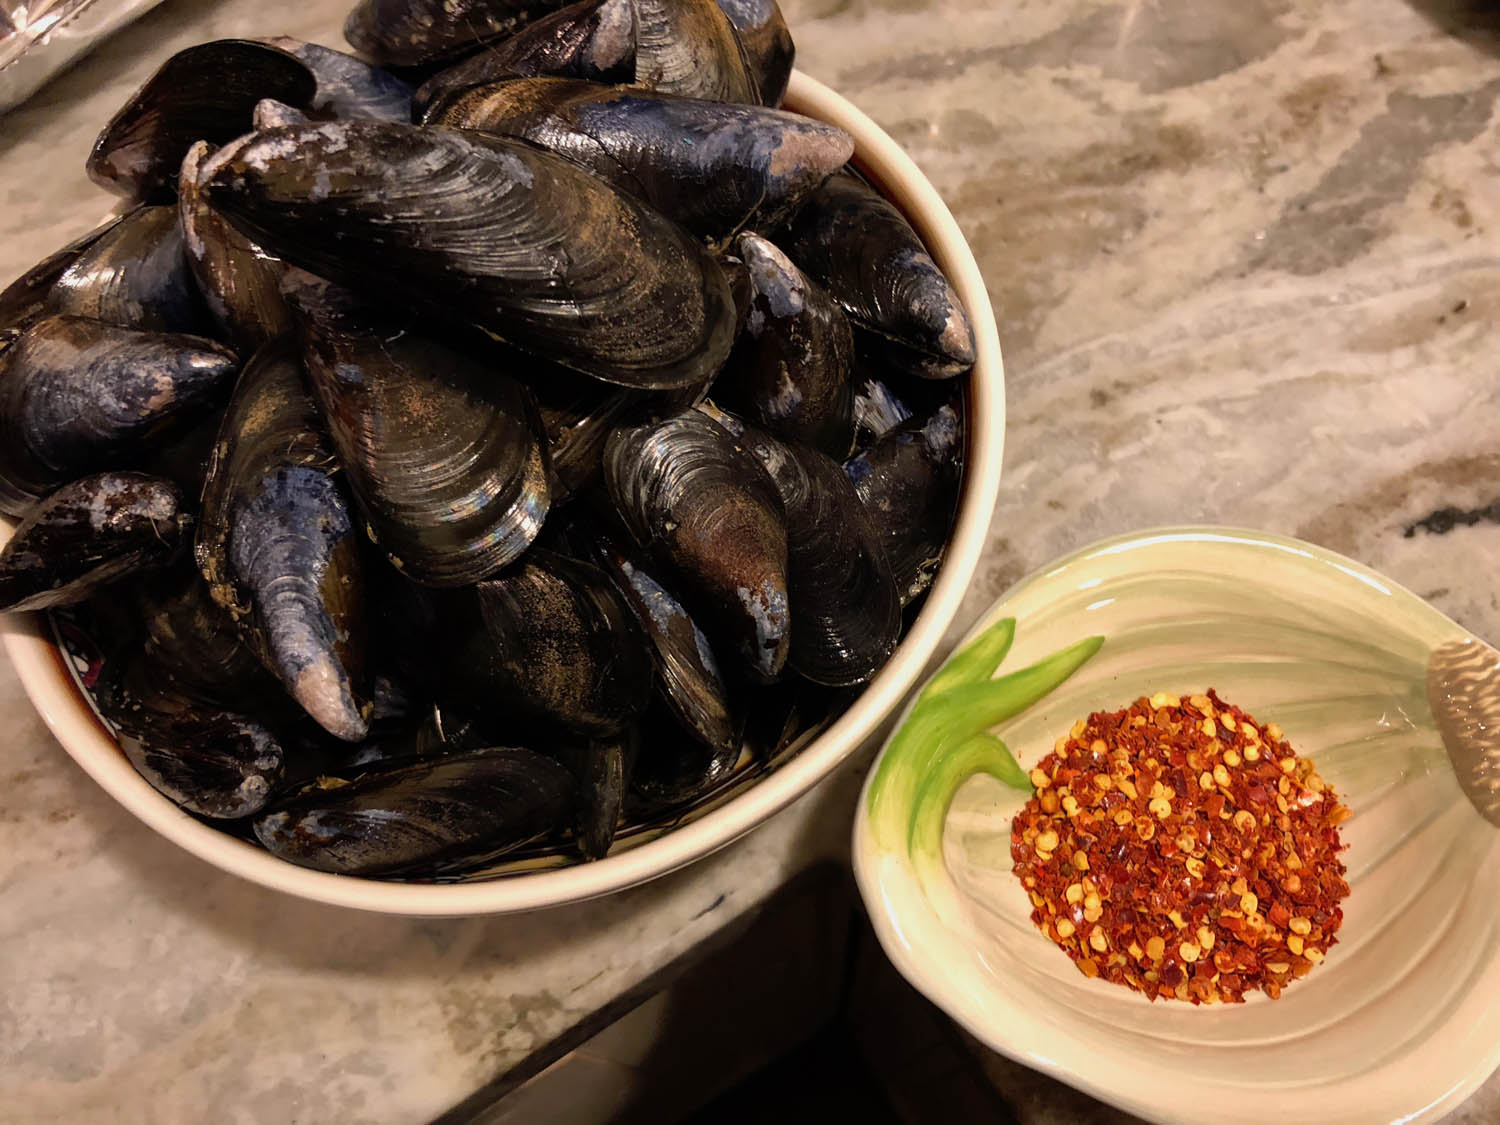 cleaned mussels in a bowl with chili flakes in a prep bowl